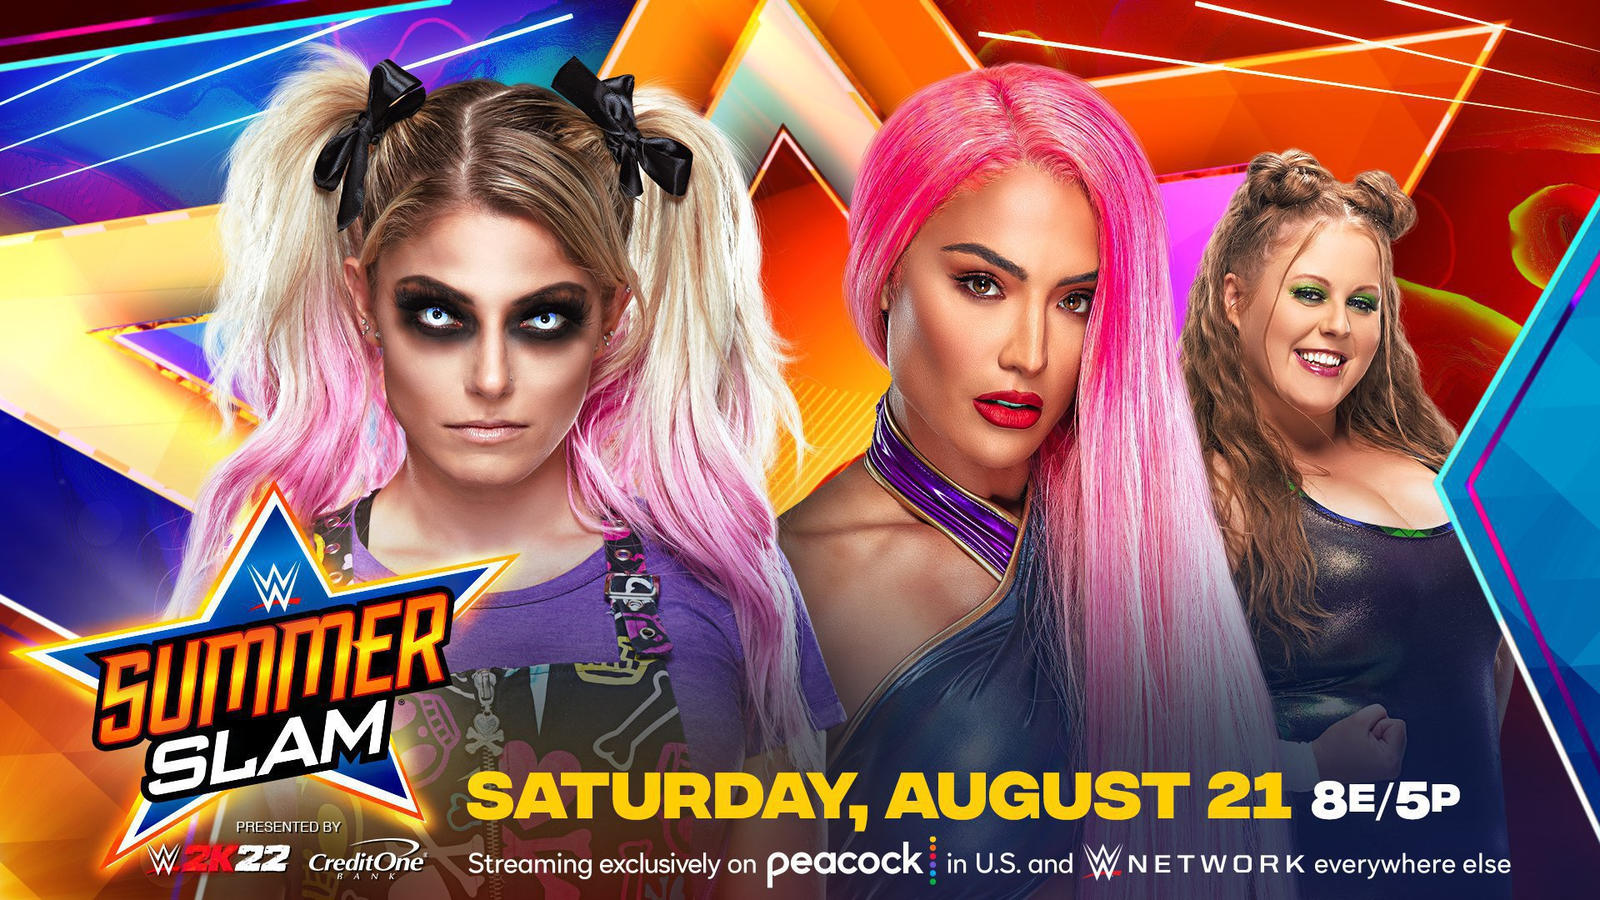 WWE Summerslam 2021: New Championship Match And More Announced 83